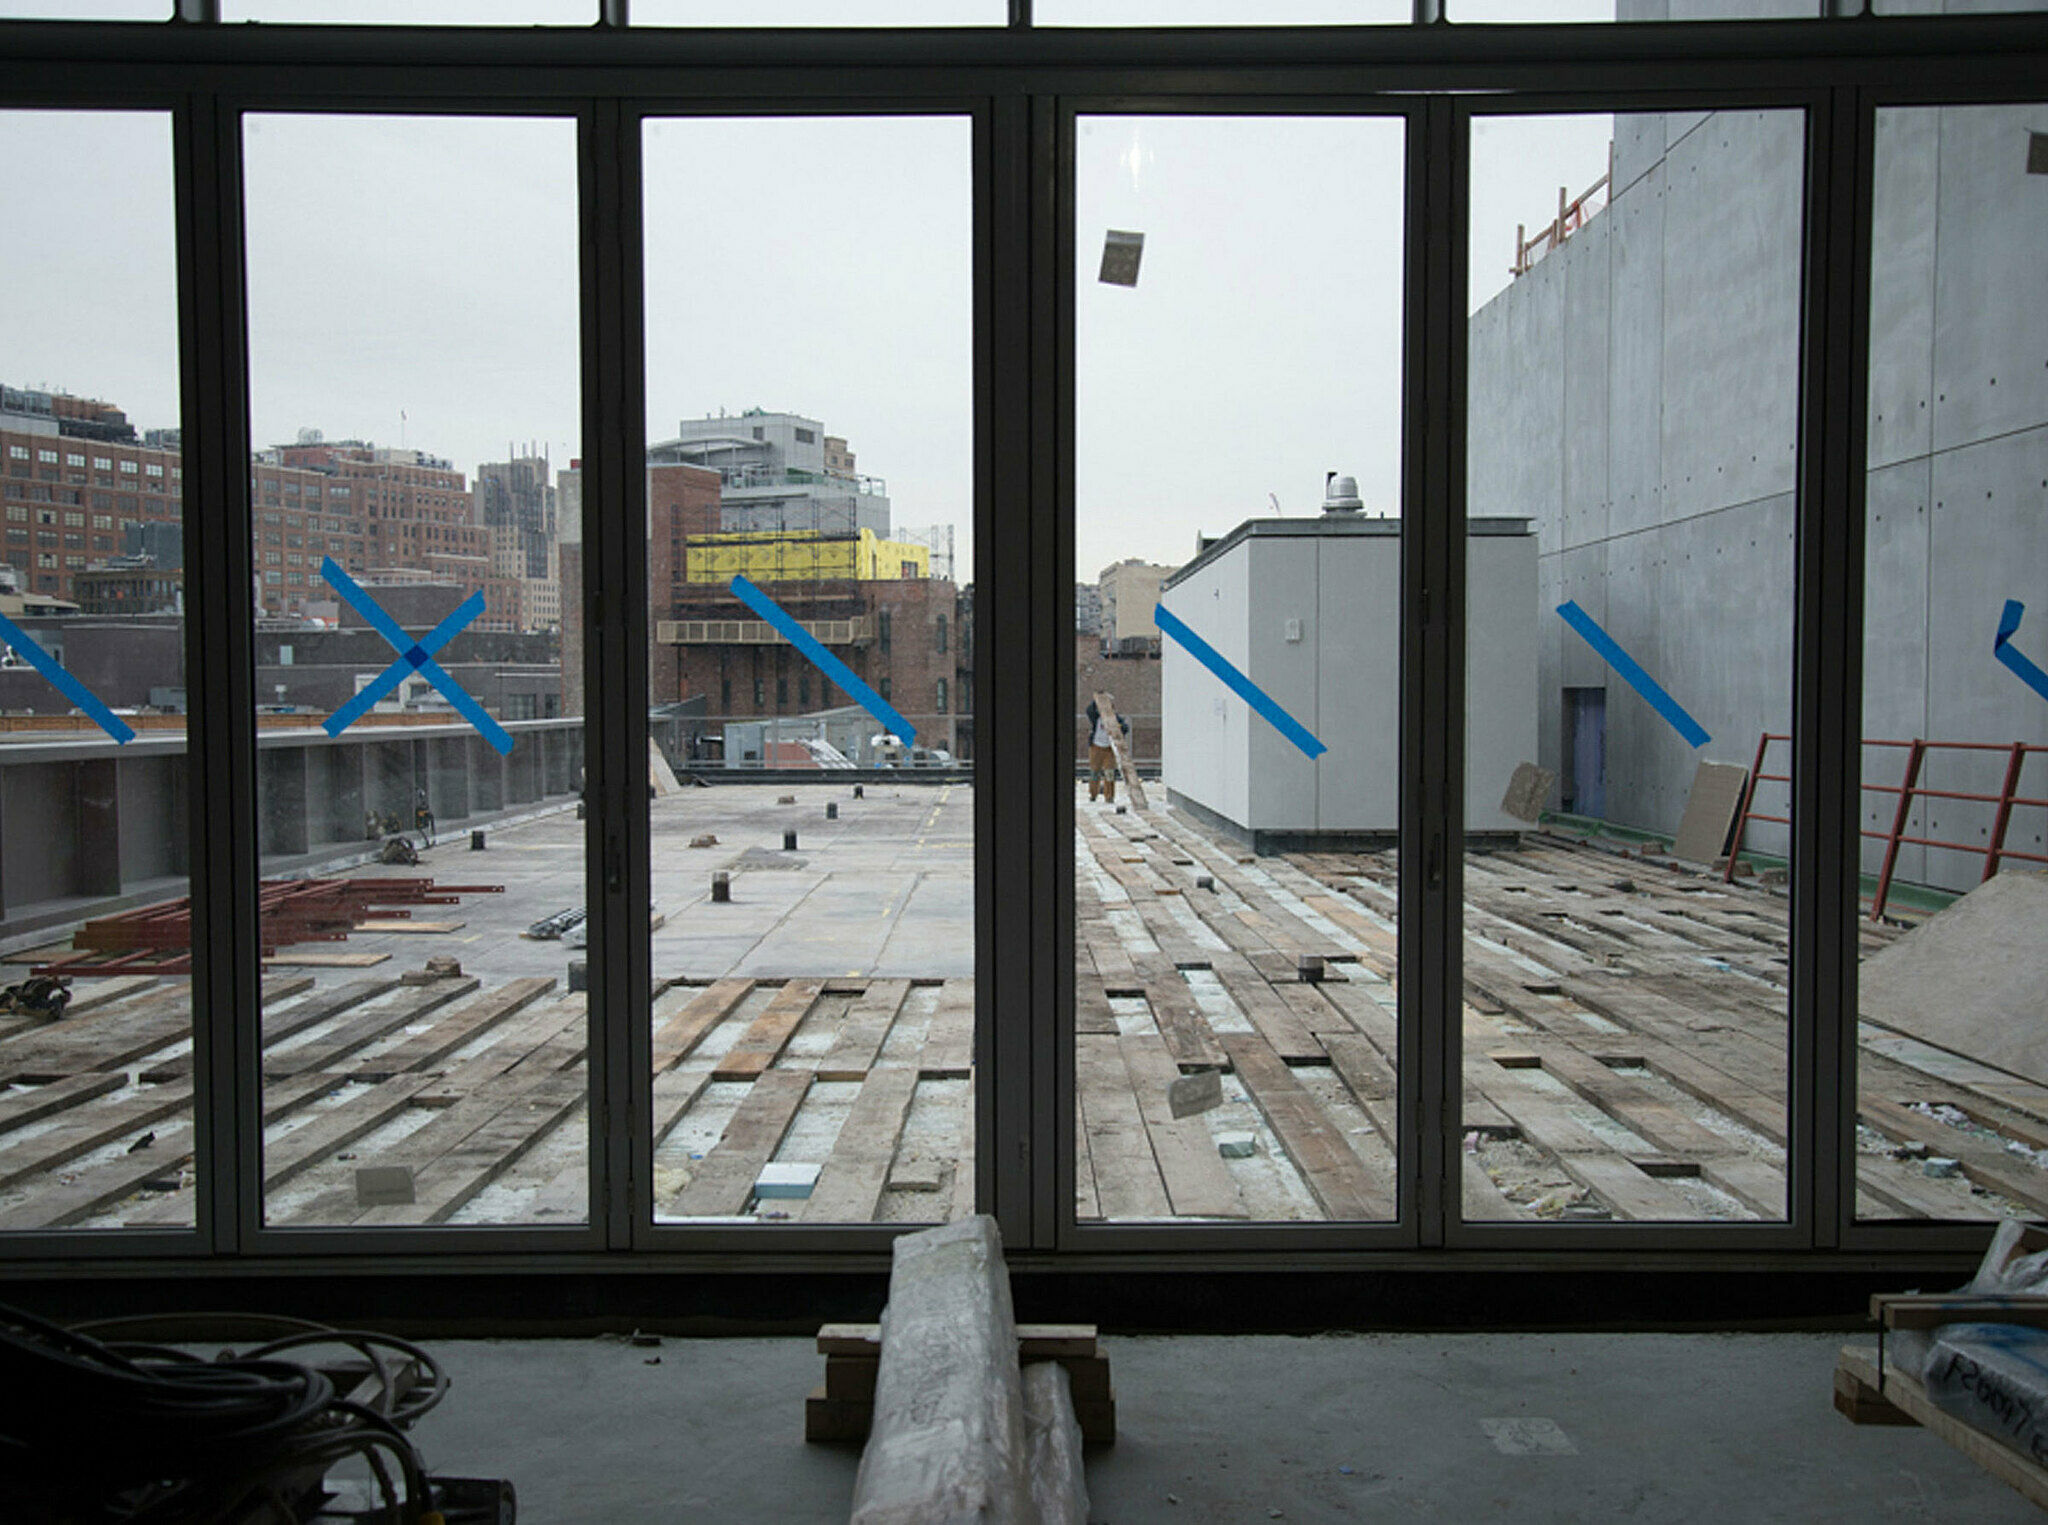 Windows looking out from the theater under construction.